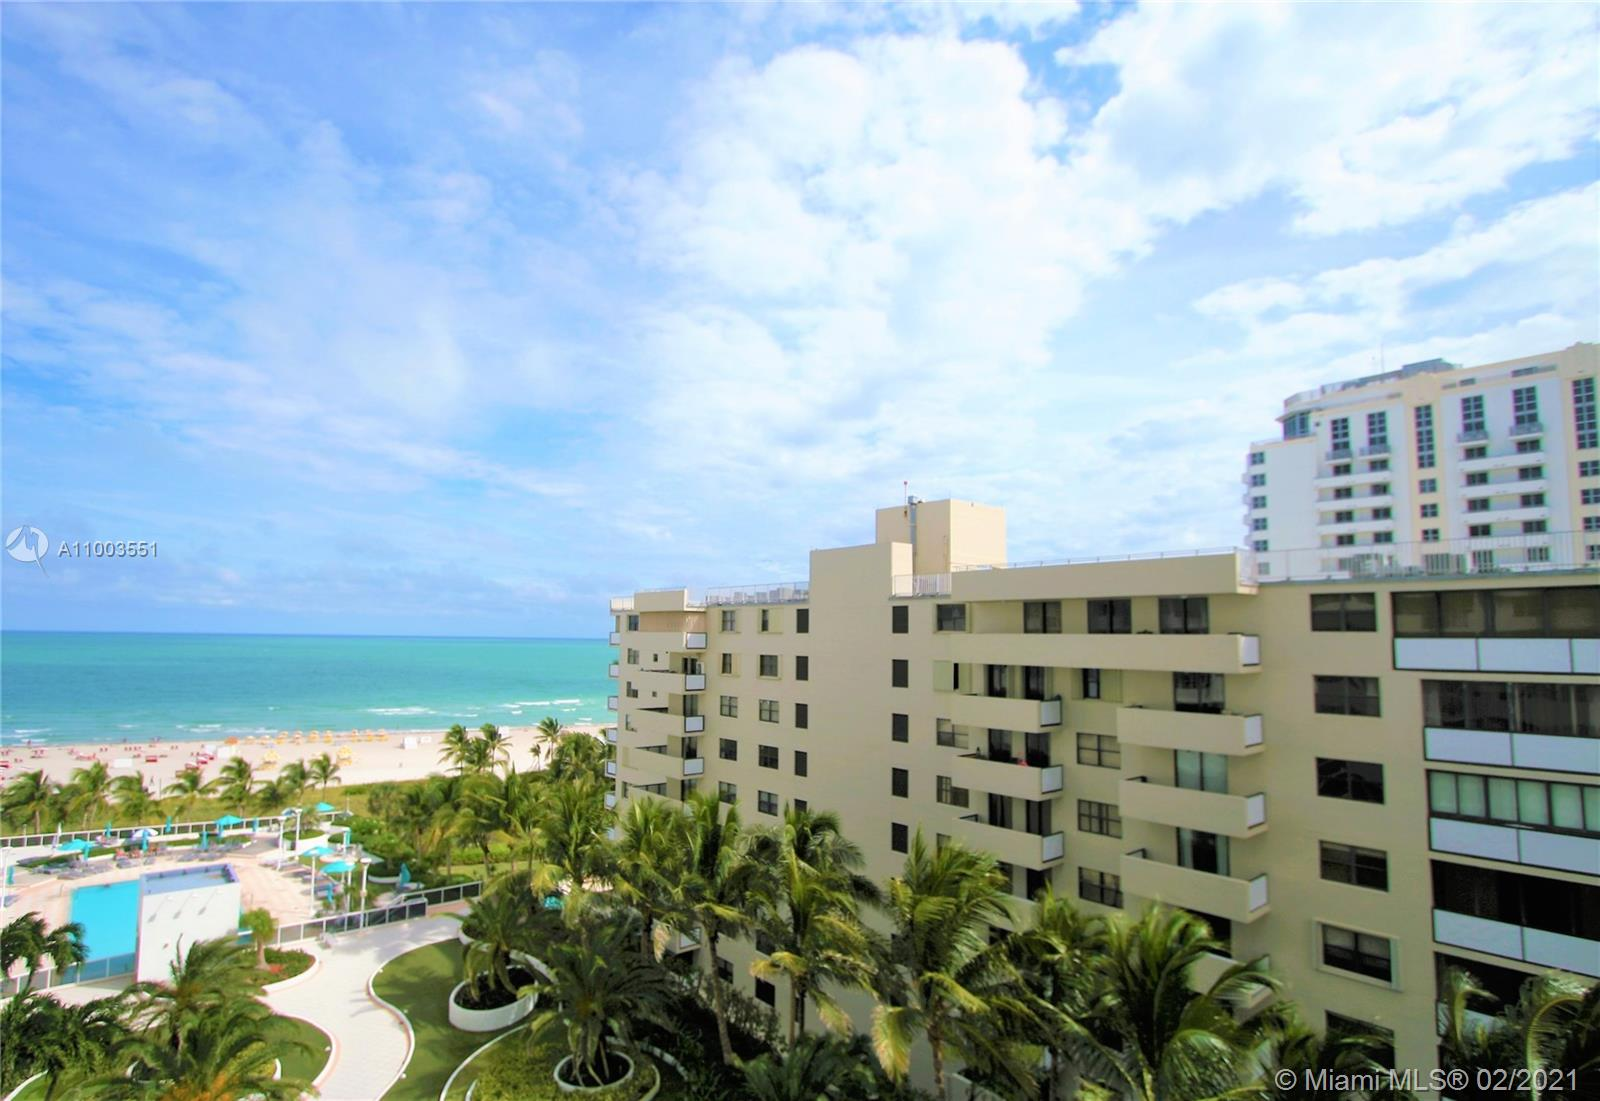 IMMACULATE UNIT AND DIRECT OCEAN VIEWS! SPECTACULAR PRIVATE BALCONY STARING DIRECTLY AT THE OCEAN AND OVER THE LAVISH DECOPLAGE POOL DECK. OPEN KITCHEN WITH A PERFECT BREAKFAST BAR, ALL TILE FLOORS, WALK-IN CLOSET, GLASS SHOWER ENCLOSURE AND MORE. SOLD FULLY FURNISHED AND FINISHED! THE DECOPLAGE IS ON THE BEST CORNER IN SOUTH BEACH, WHERE LINCOLN MEETS THE OCEAN. STROLL OUT OF THE BUILDING TO BRUNCH ON LINCOLN ROAD, GREAT DINING AND NIGHTLIFE AT ALL THE HOTELS ON COLLINS AND OF COURSE, WALK RIGHT DOWN TO THE BEACH RIGHT FROM THE HEATED POOL DECK. 24/7 CONCIERGE AND VALET, FANTASTIC GYM, PARTY AND GAME ROOM AND MORE ..